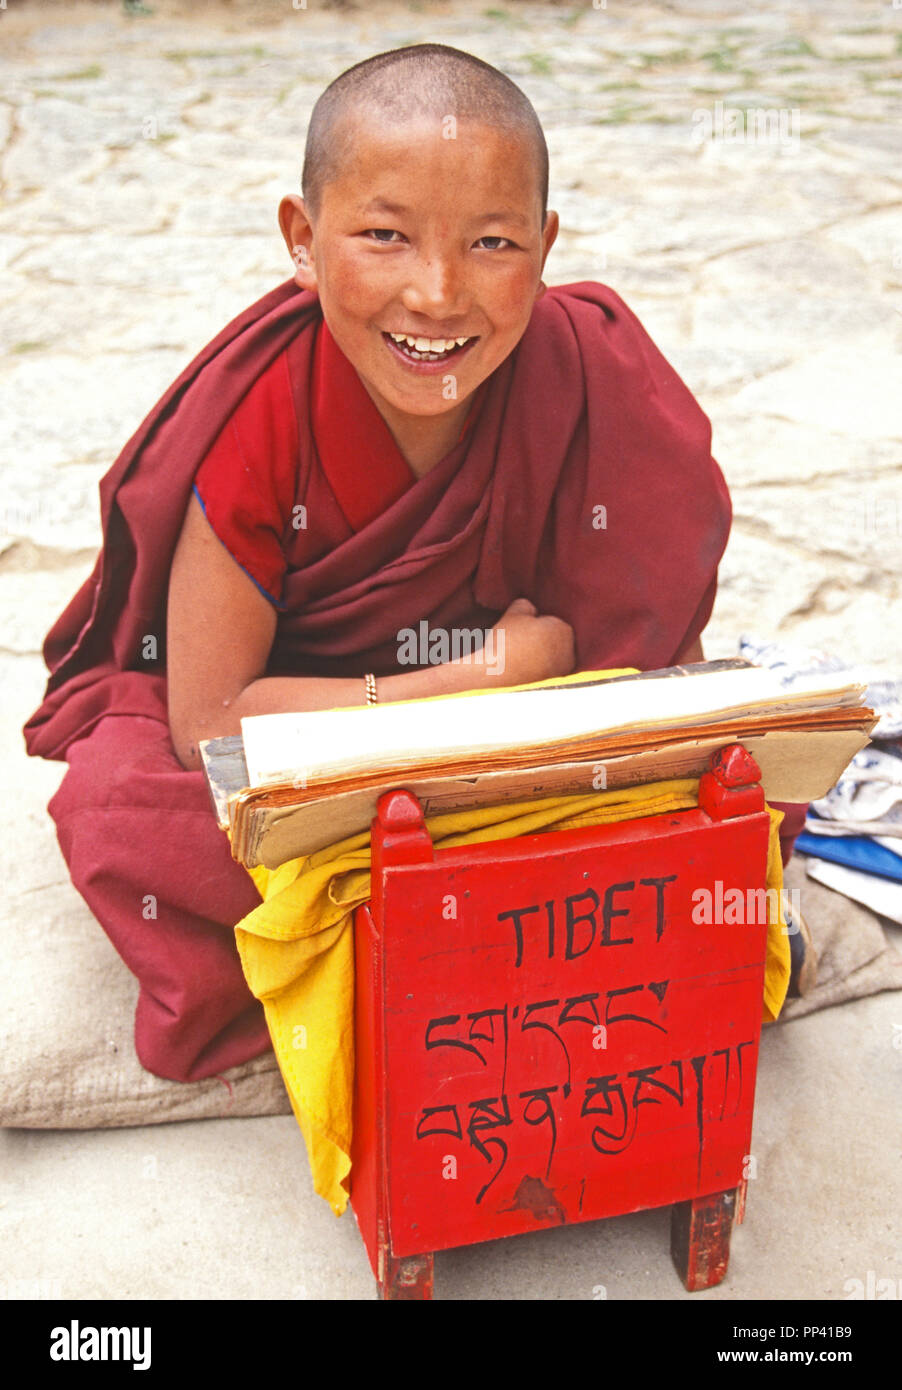 Novice monk during religious study at Drepung Monastery near Lhasa, Tibet. - Stock Image